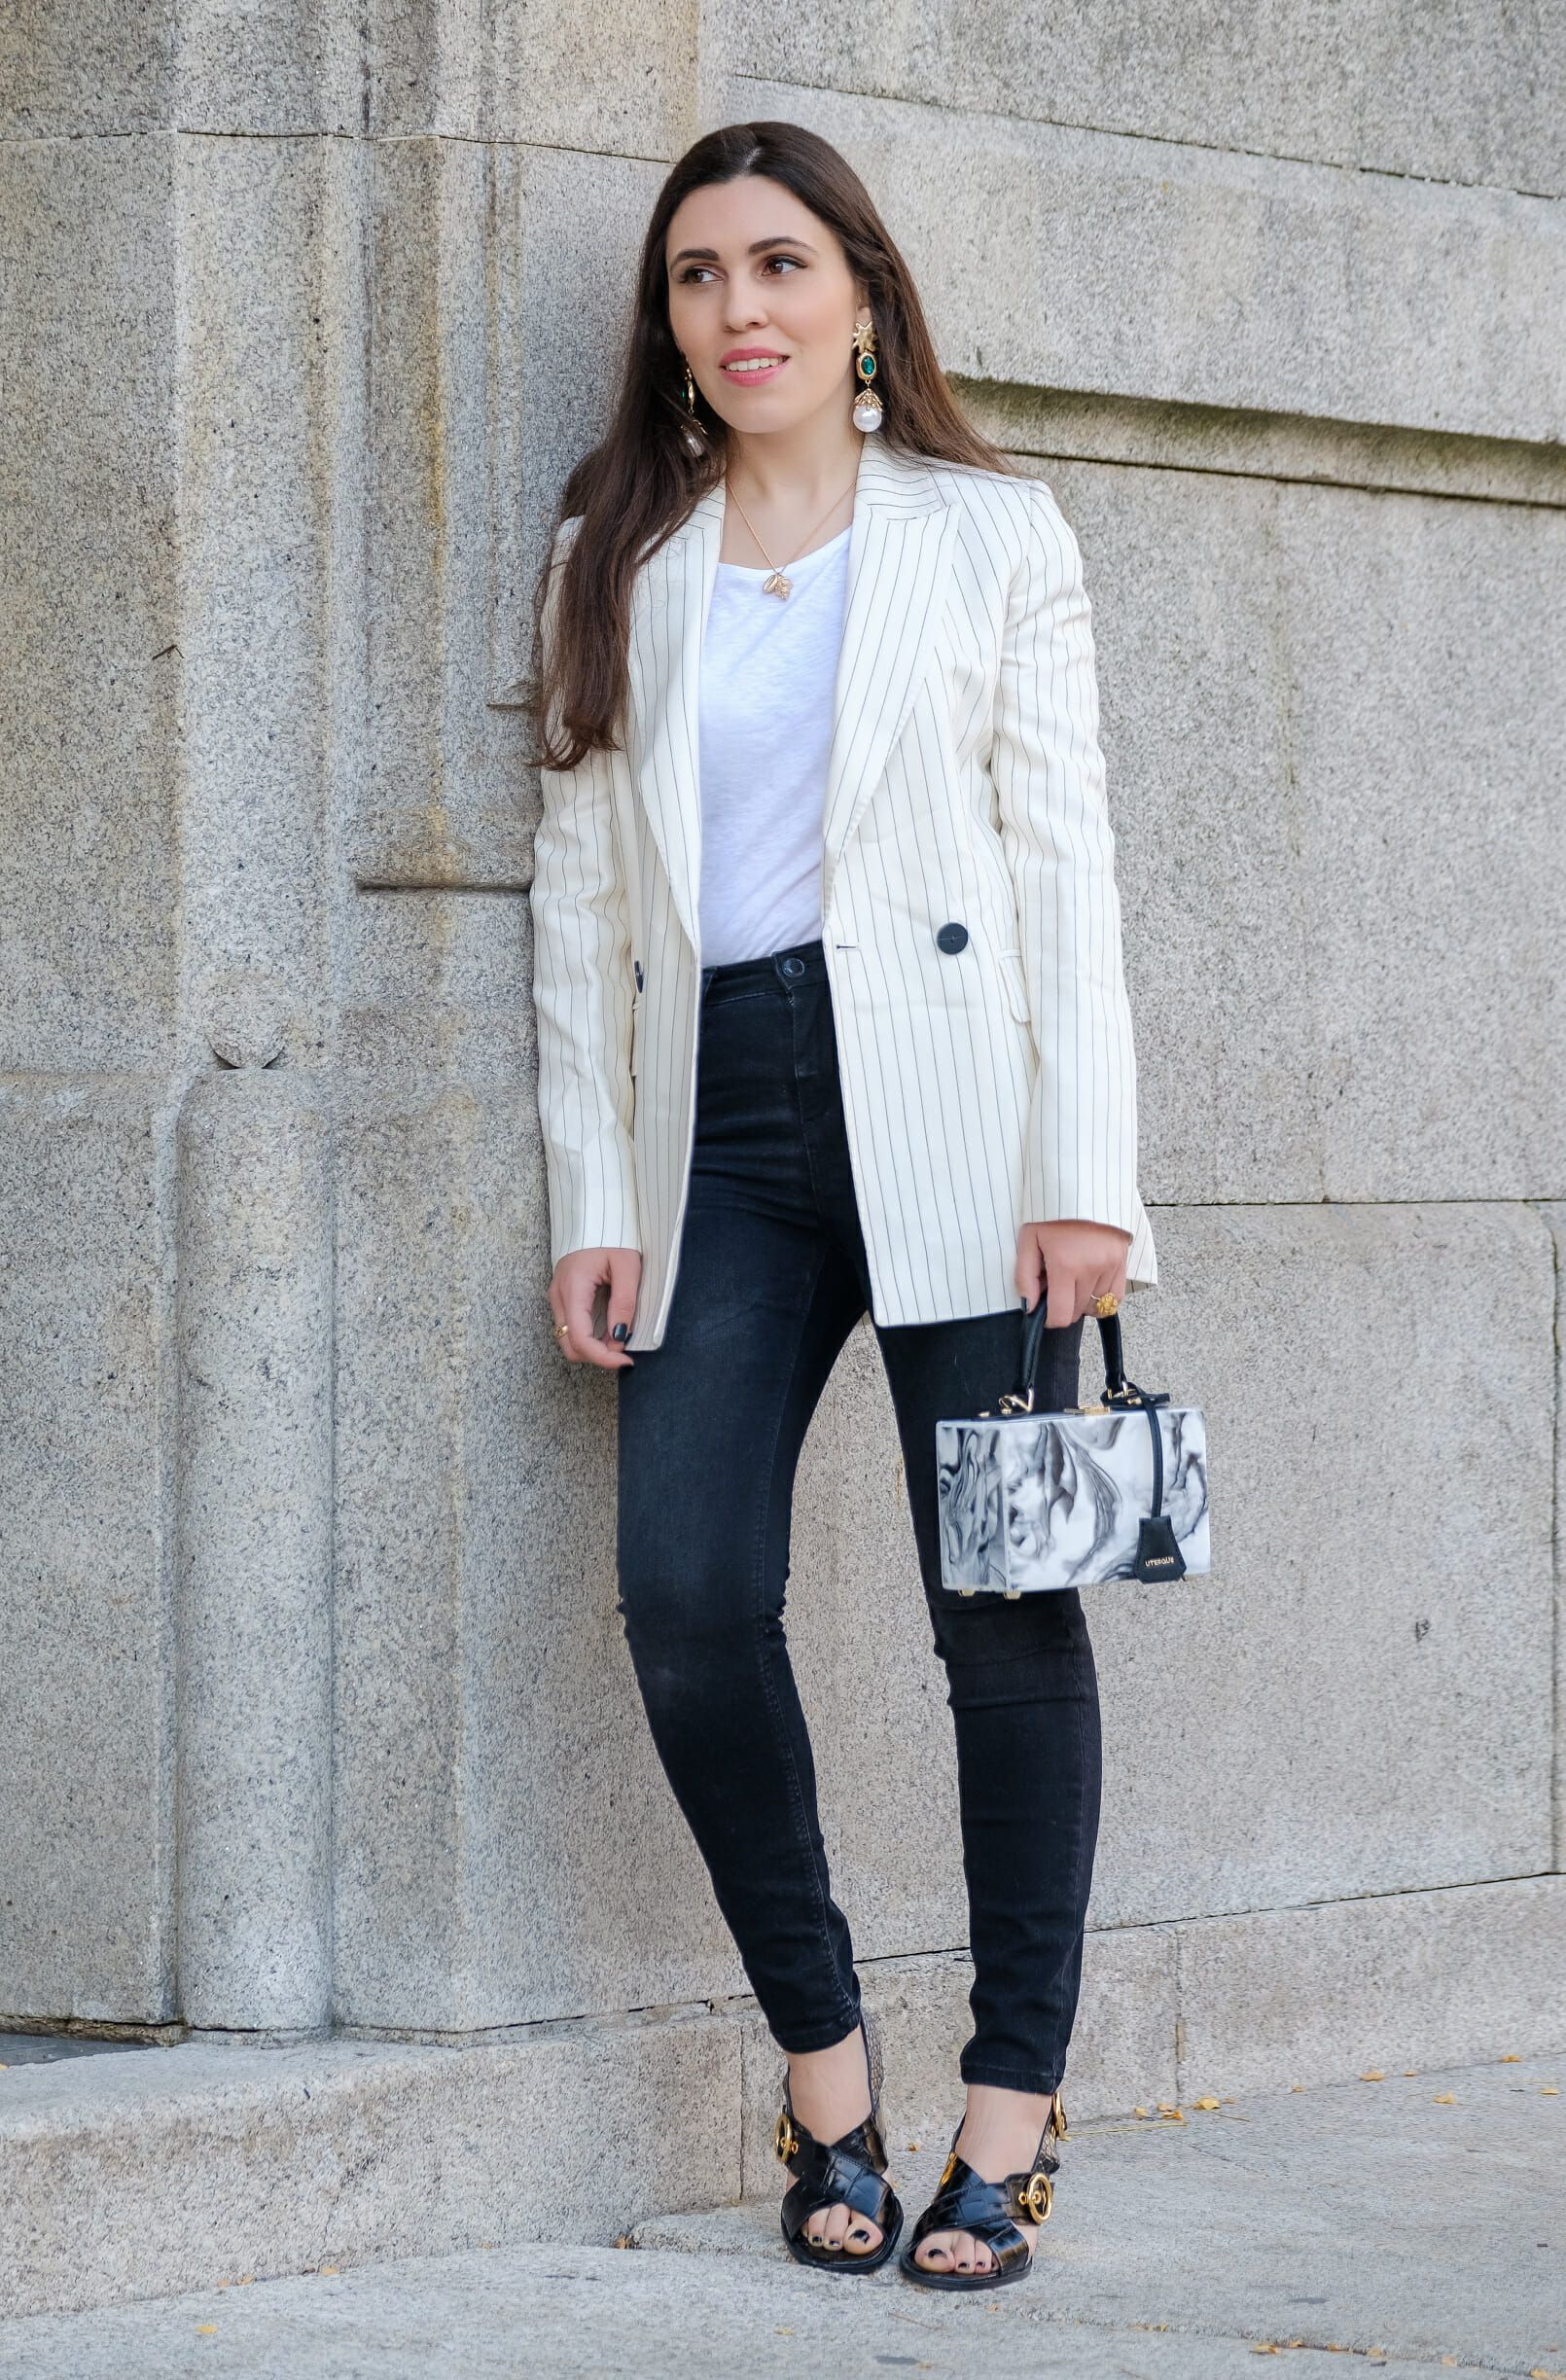 2a3ea09f What i always buy on sales: Blazer - #Bag #black #blazer #box #conch #Gold  #Heels #Leather #linen #marble #MassimoDutti #necklace #Pinstripes #sales  ...